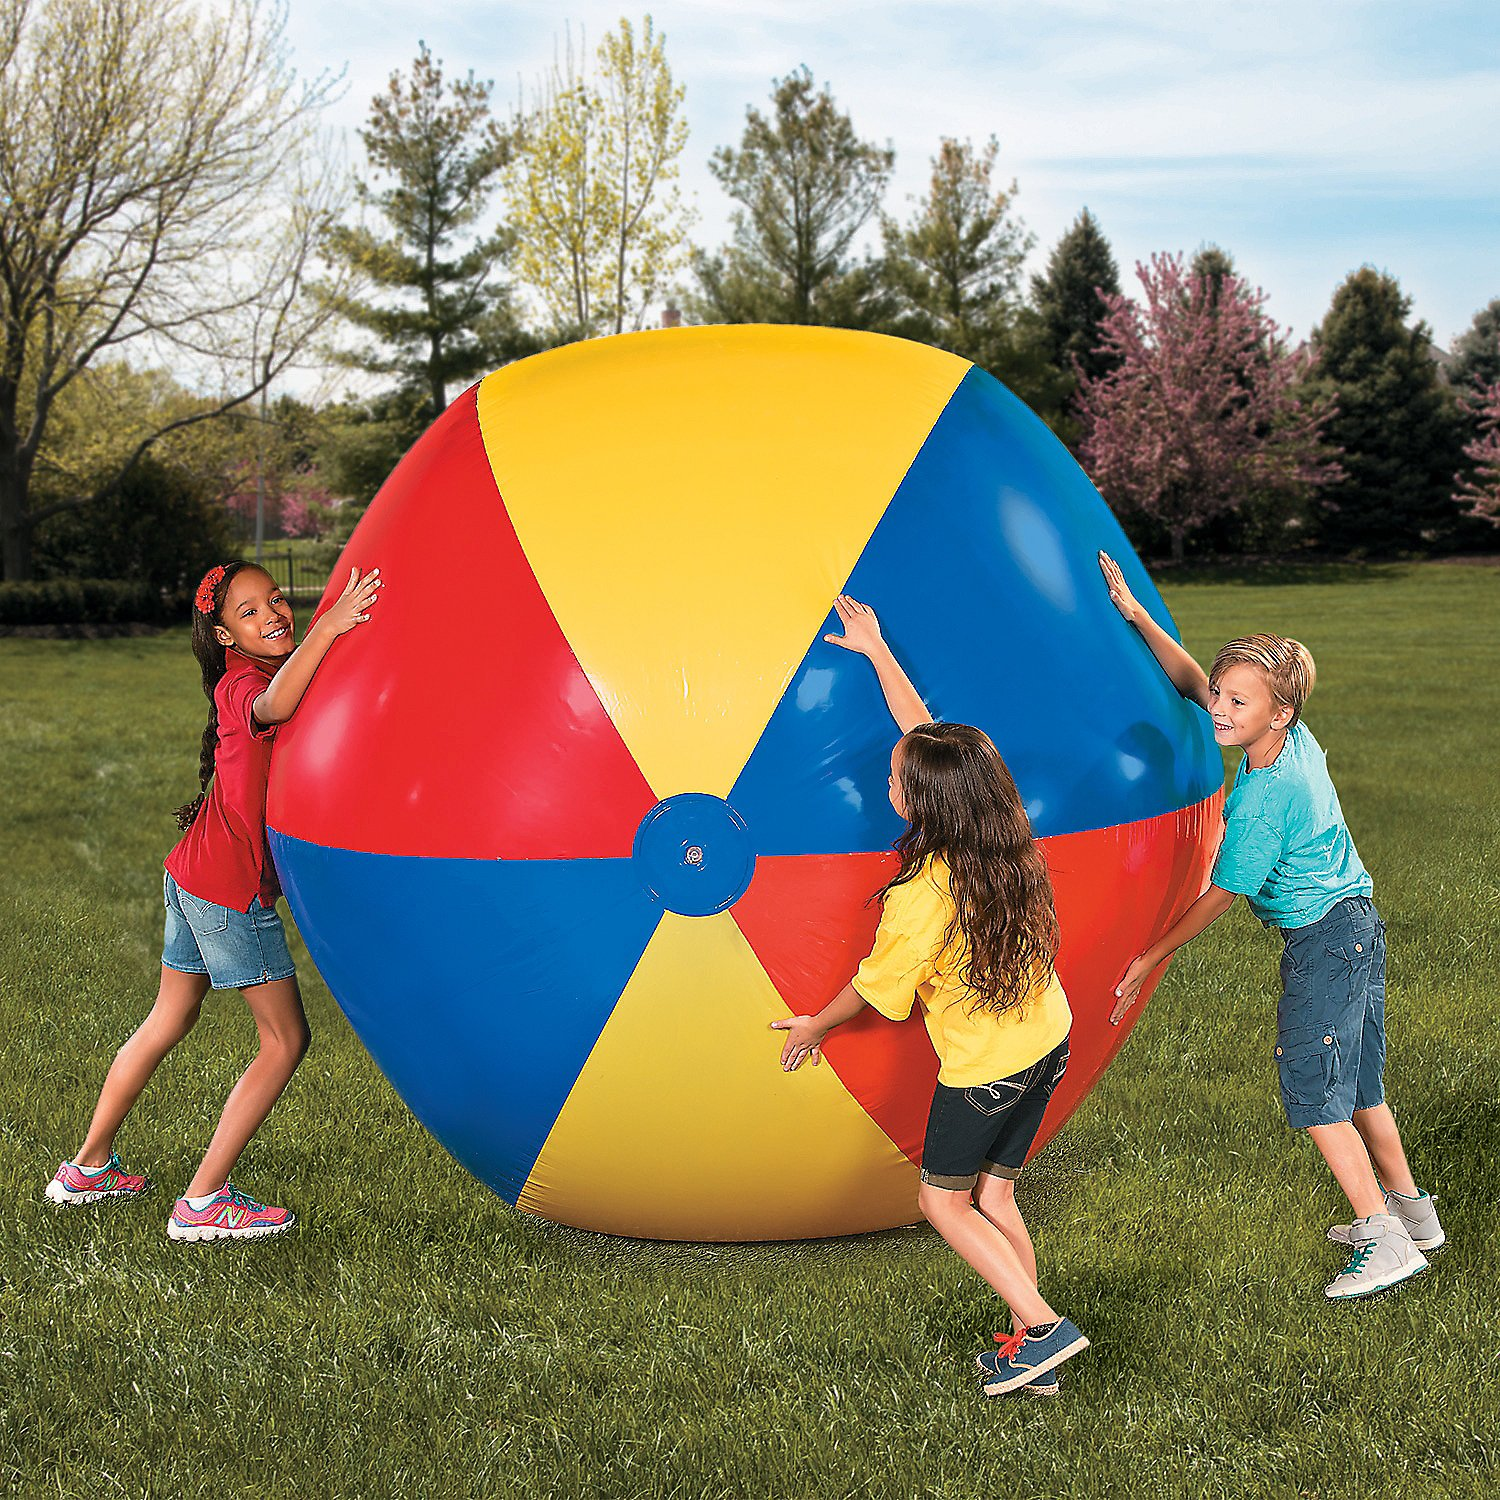 Giant Jumbo Vinyl Inflatable Beach Ball - VBS Pool Fun 6 Foot Diameter by Fun Express (Image #1)